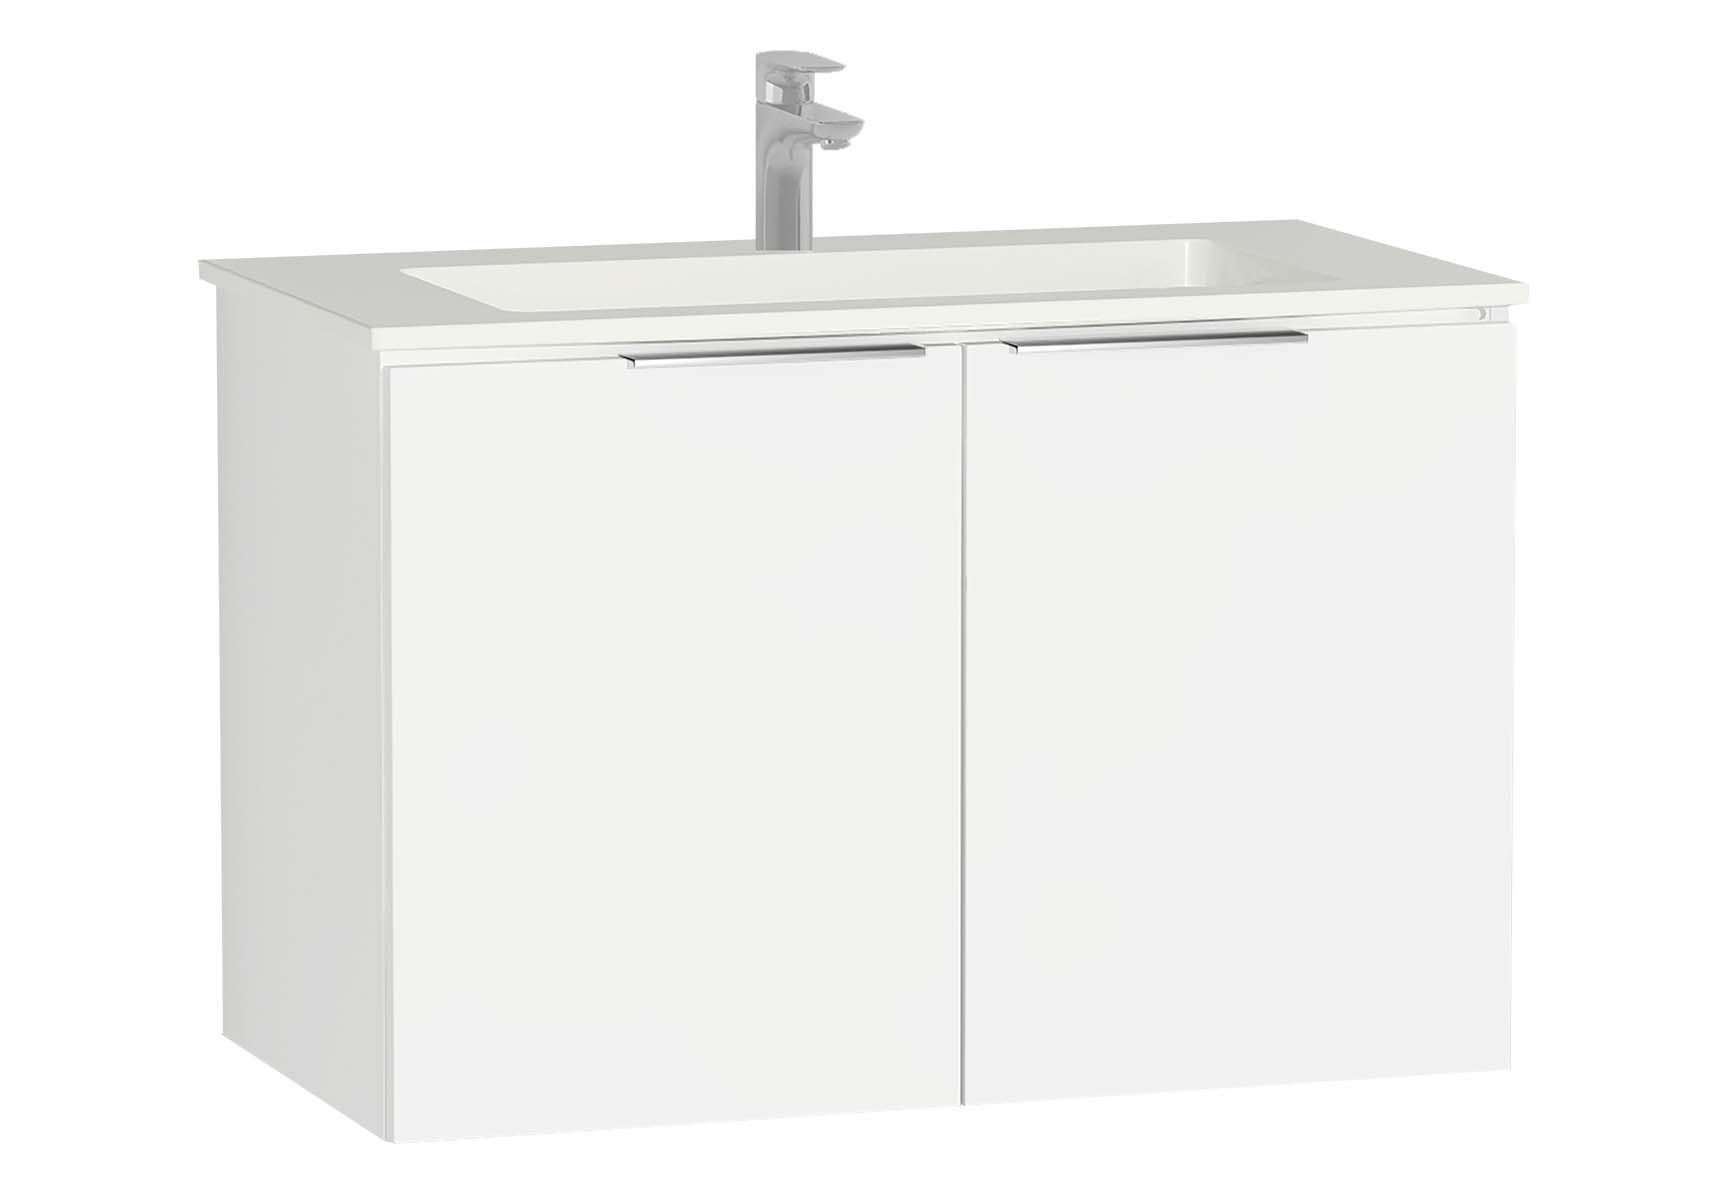 Central Washbasin Unit with doors, 90 cm, White High Gloss, Infinit Washbasin